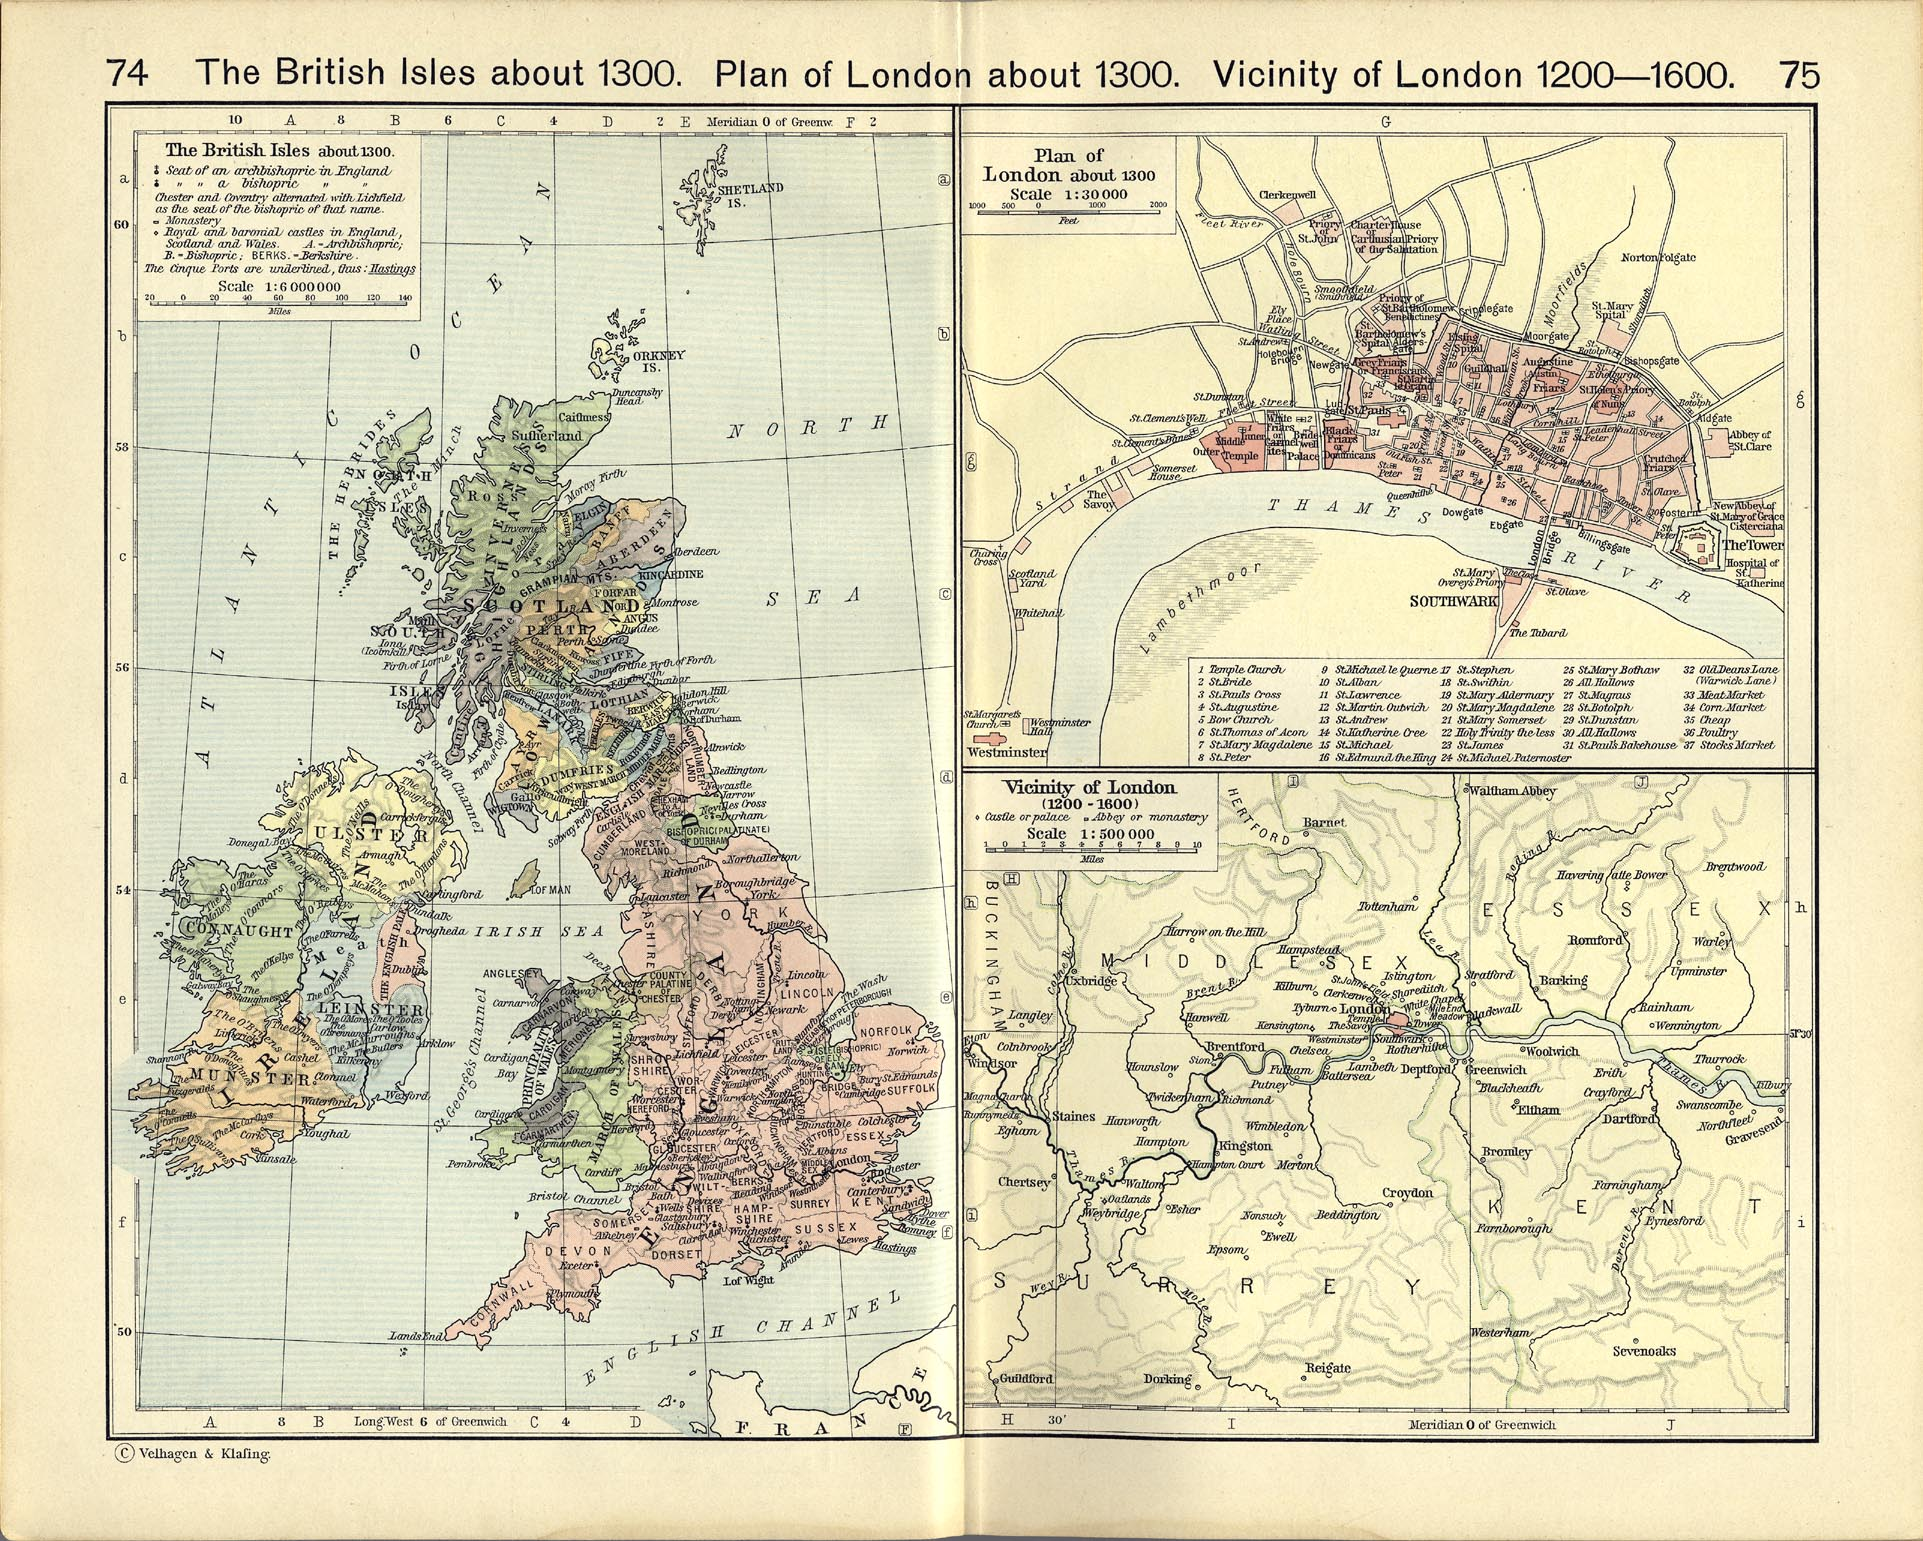 Maps of the British Isles and London at About 1300